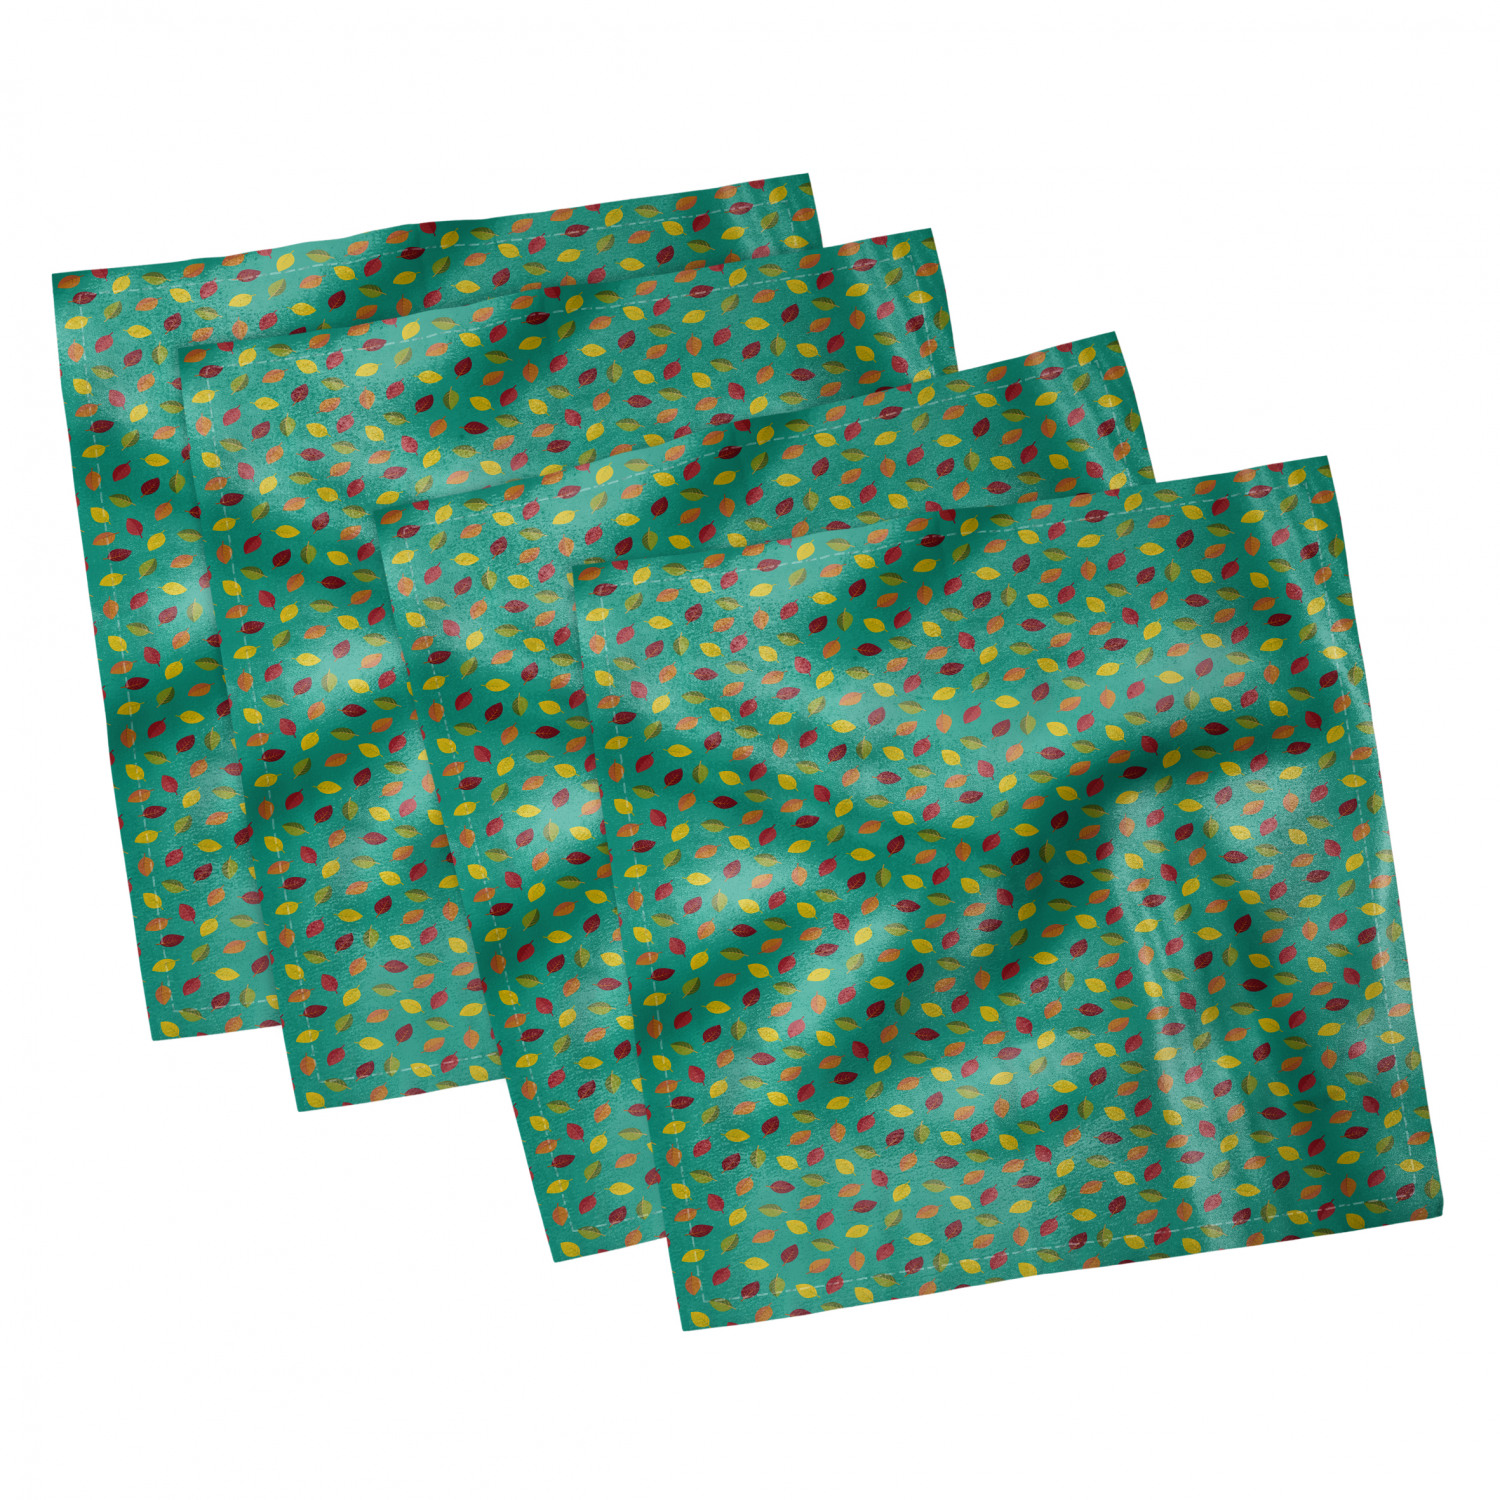 thumbnail 31 - Ambesonne-Leaves-Forest-Decorative-Satin-Napkins-Set-of-4-Party-Dinner-Fabric